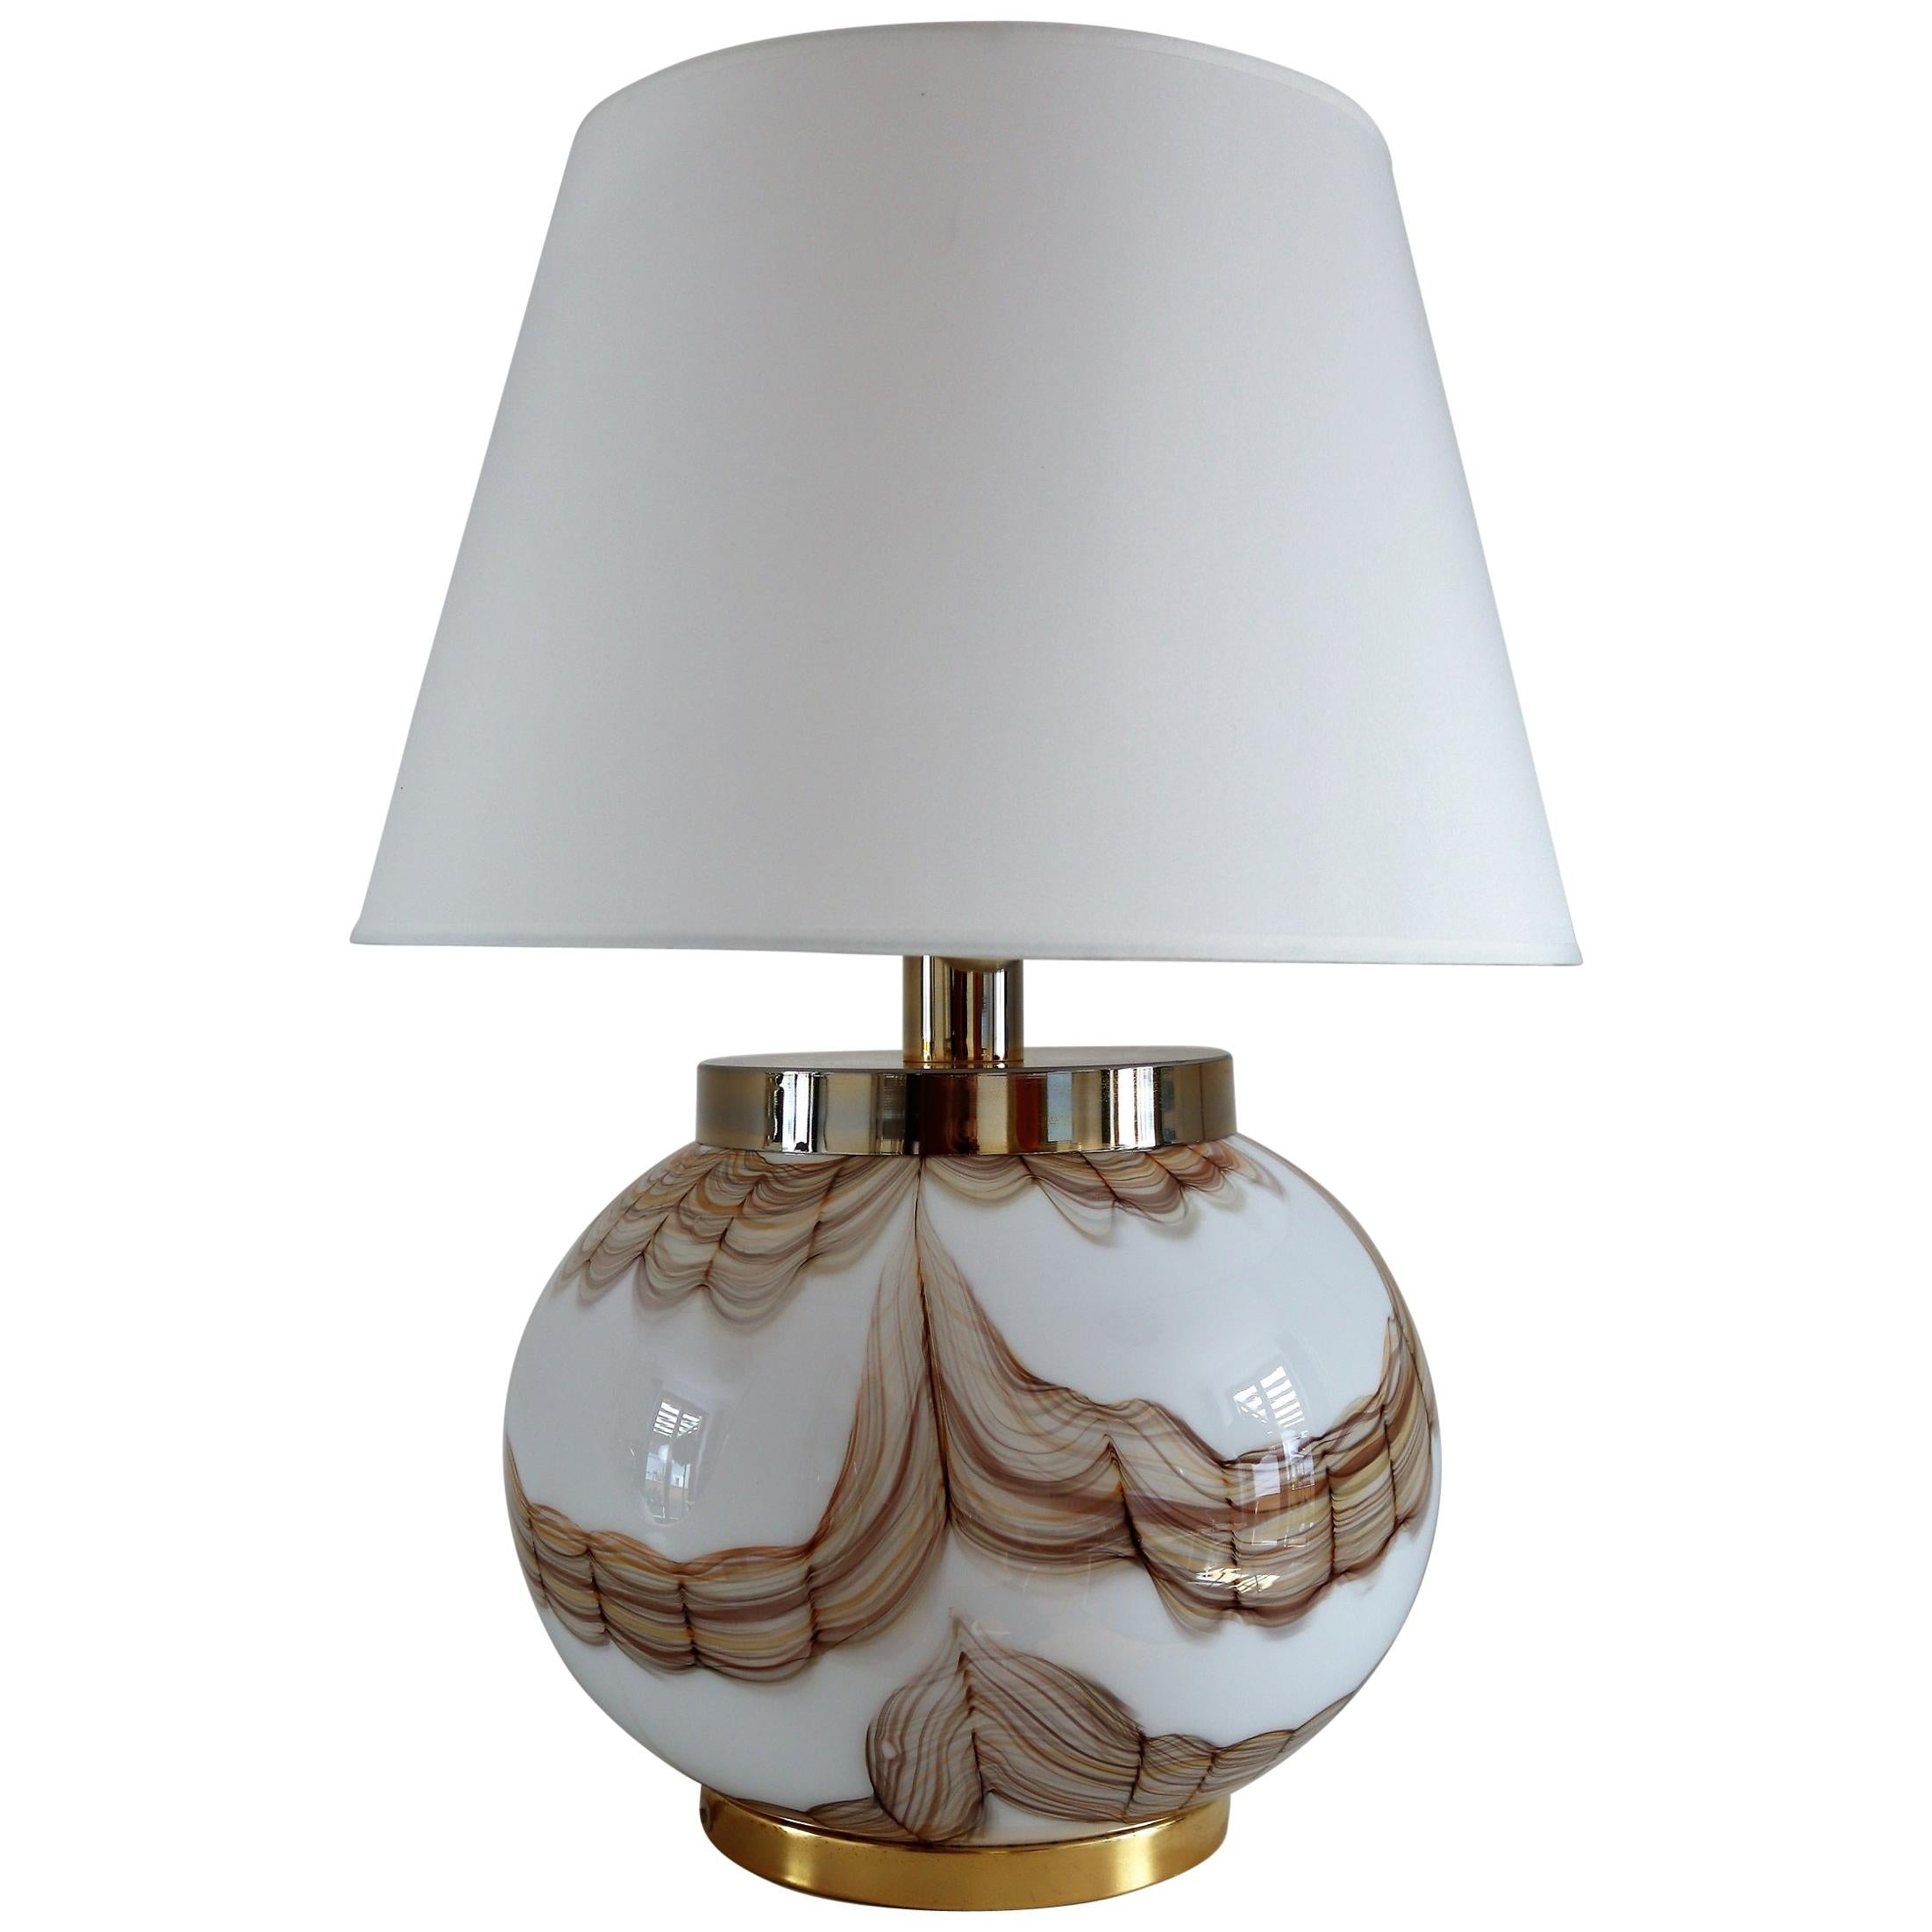 Italian Murano Glass Table Lamp, 1970s